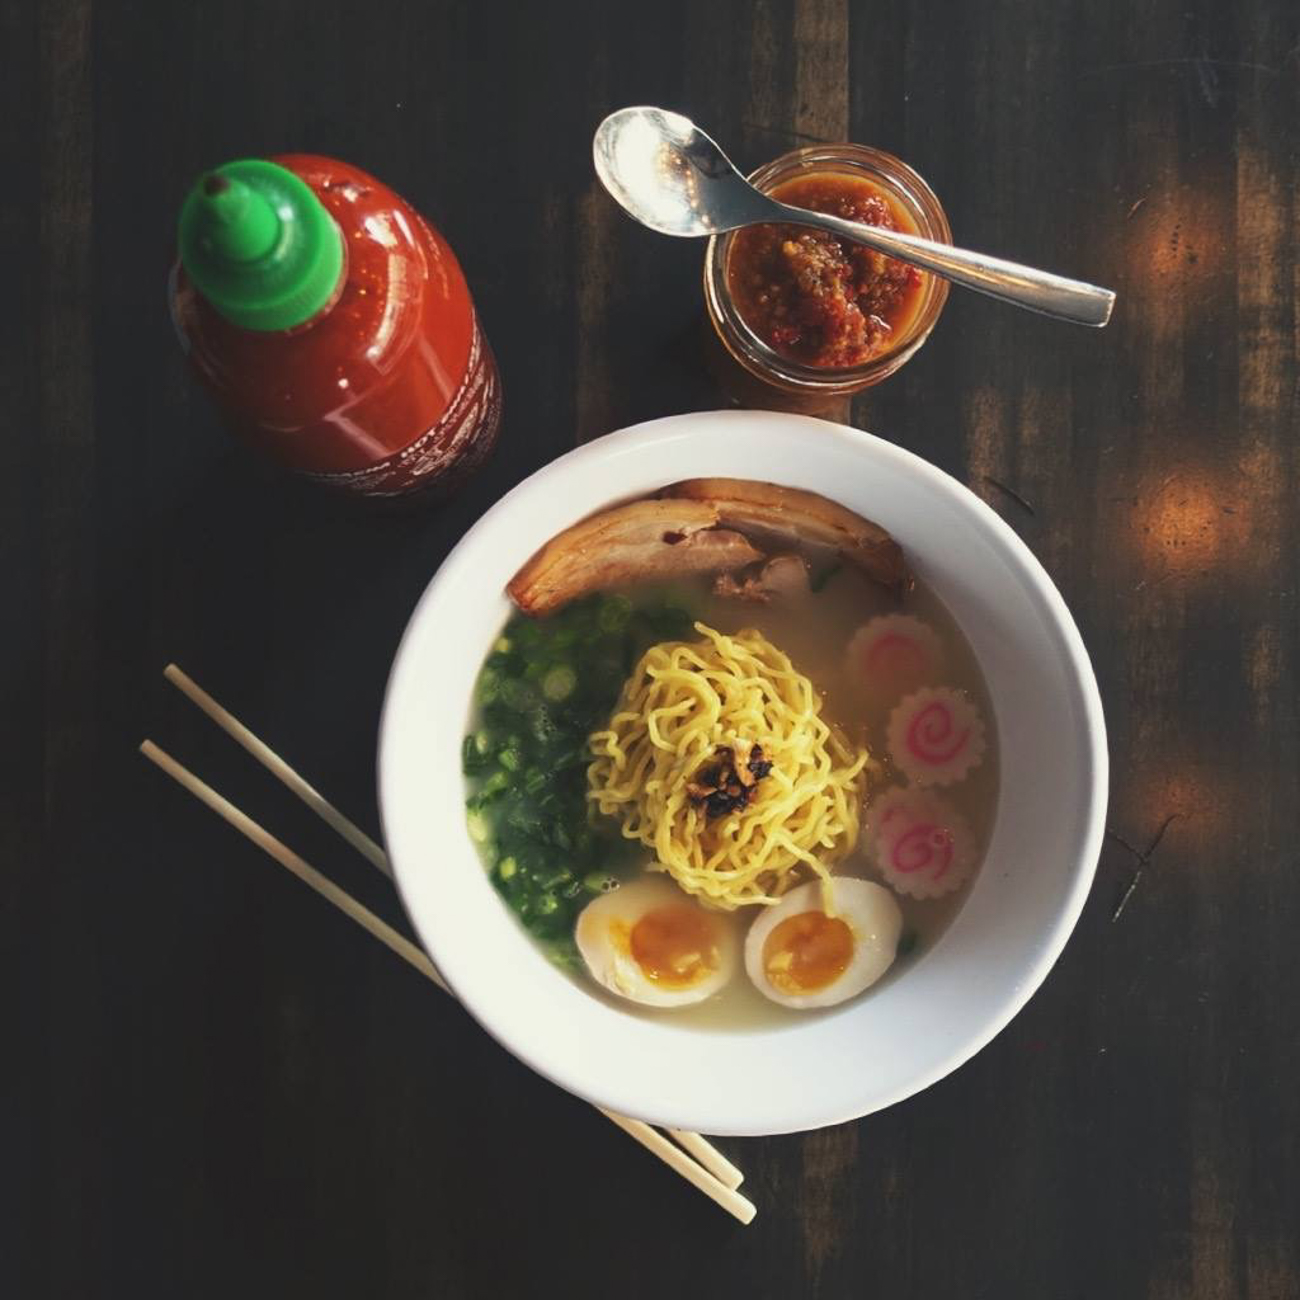 Hapa Ramen: tonkotsu broth (chicken & pork), soft boiled egg, pork belly, green onions, naurtomaki, and burnt garlic oil / Image courtesy of Quan Hapa // Published: 1.10.17